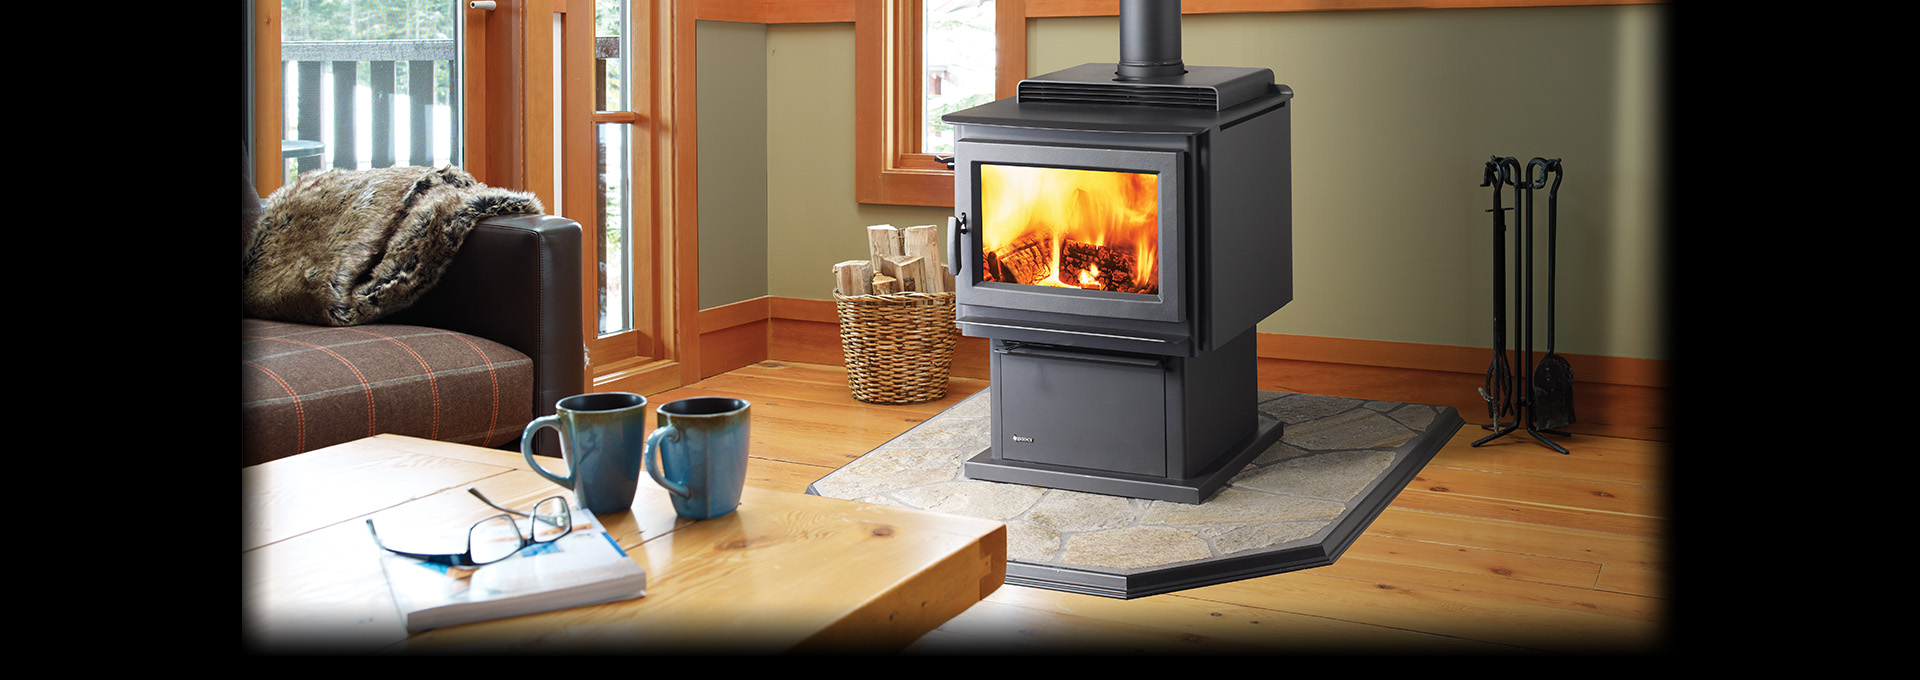 F3500 Large Hybrid Catalytic Woodstove - Regency Fireplace Products